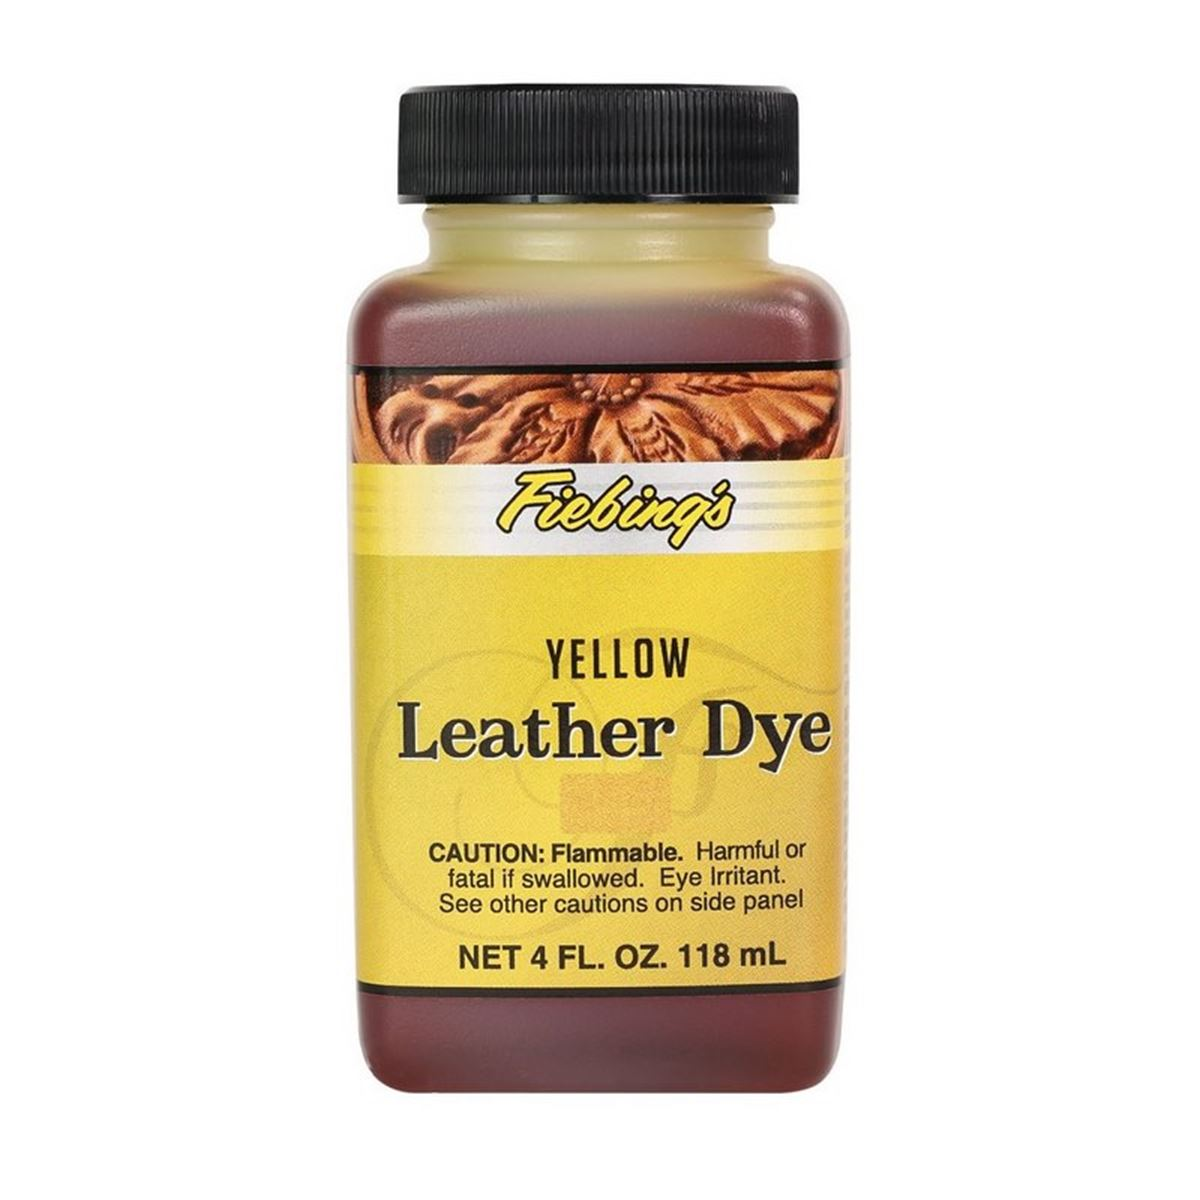 Teinture pour cuir FIEBING'S Leather dye - JAUNE - YELLOW